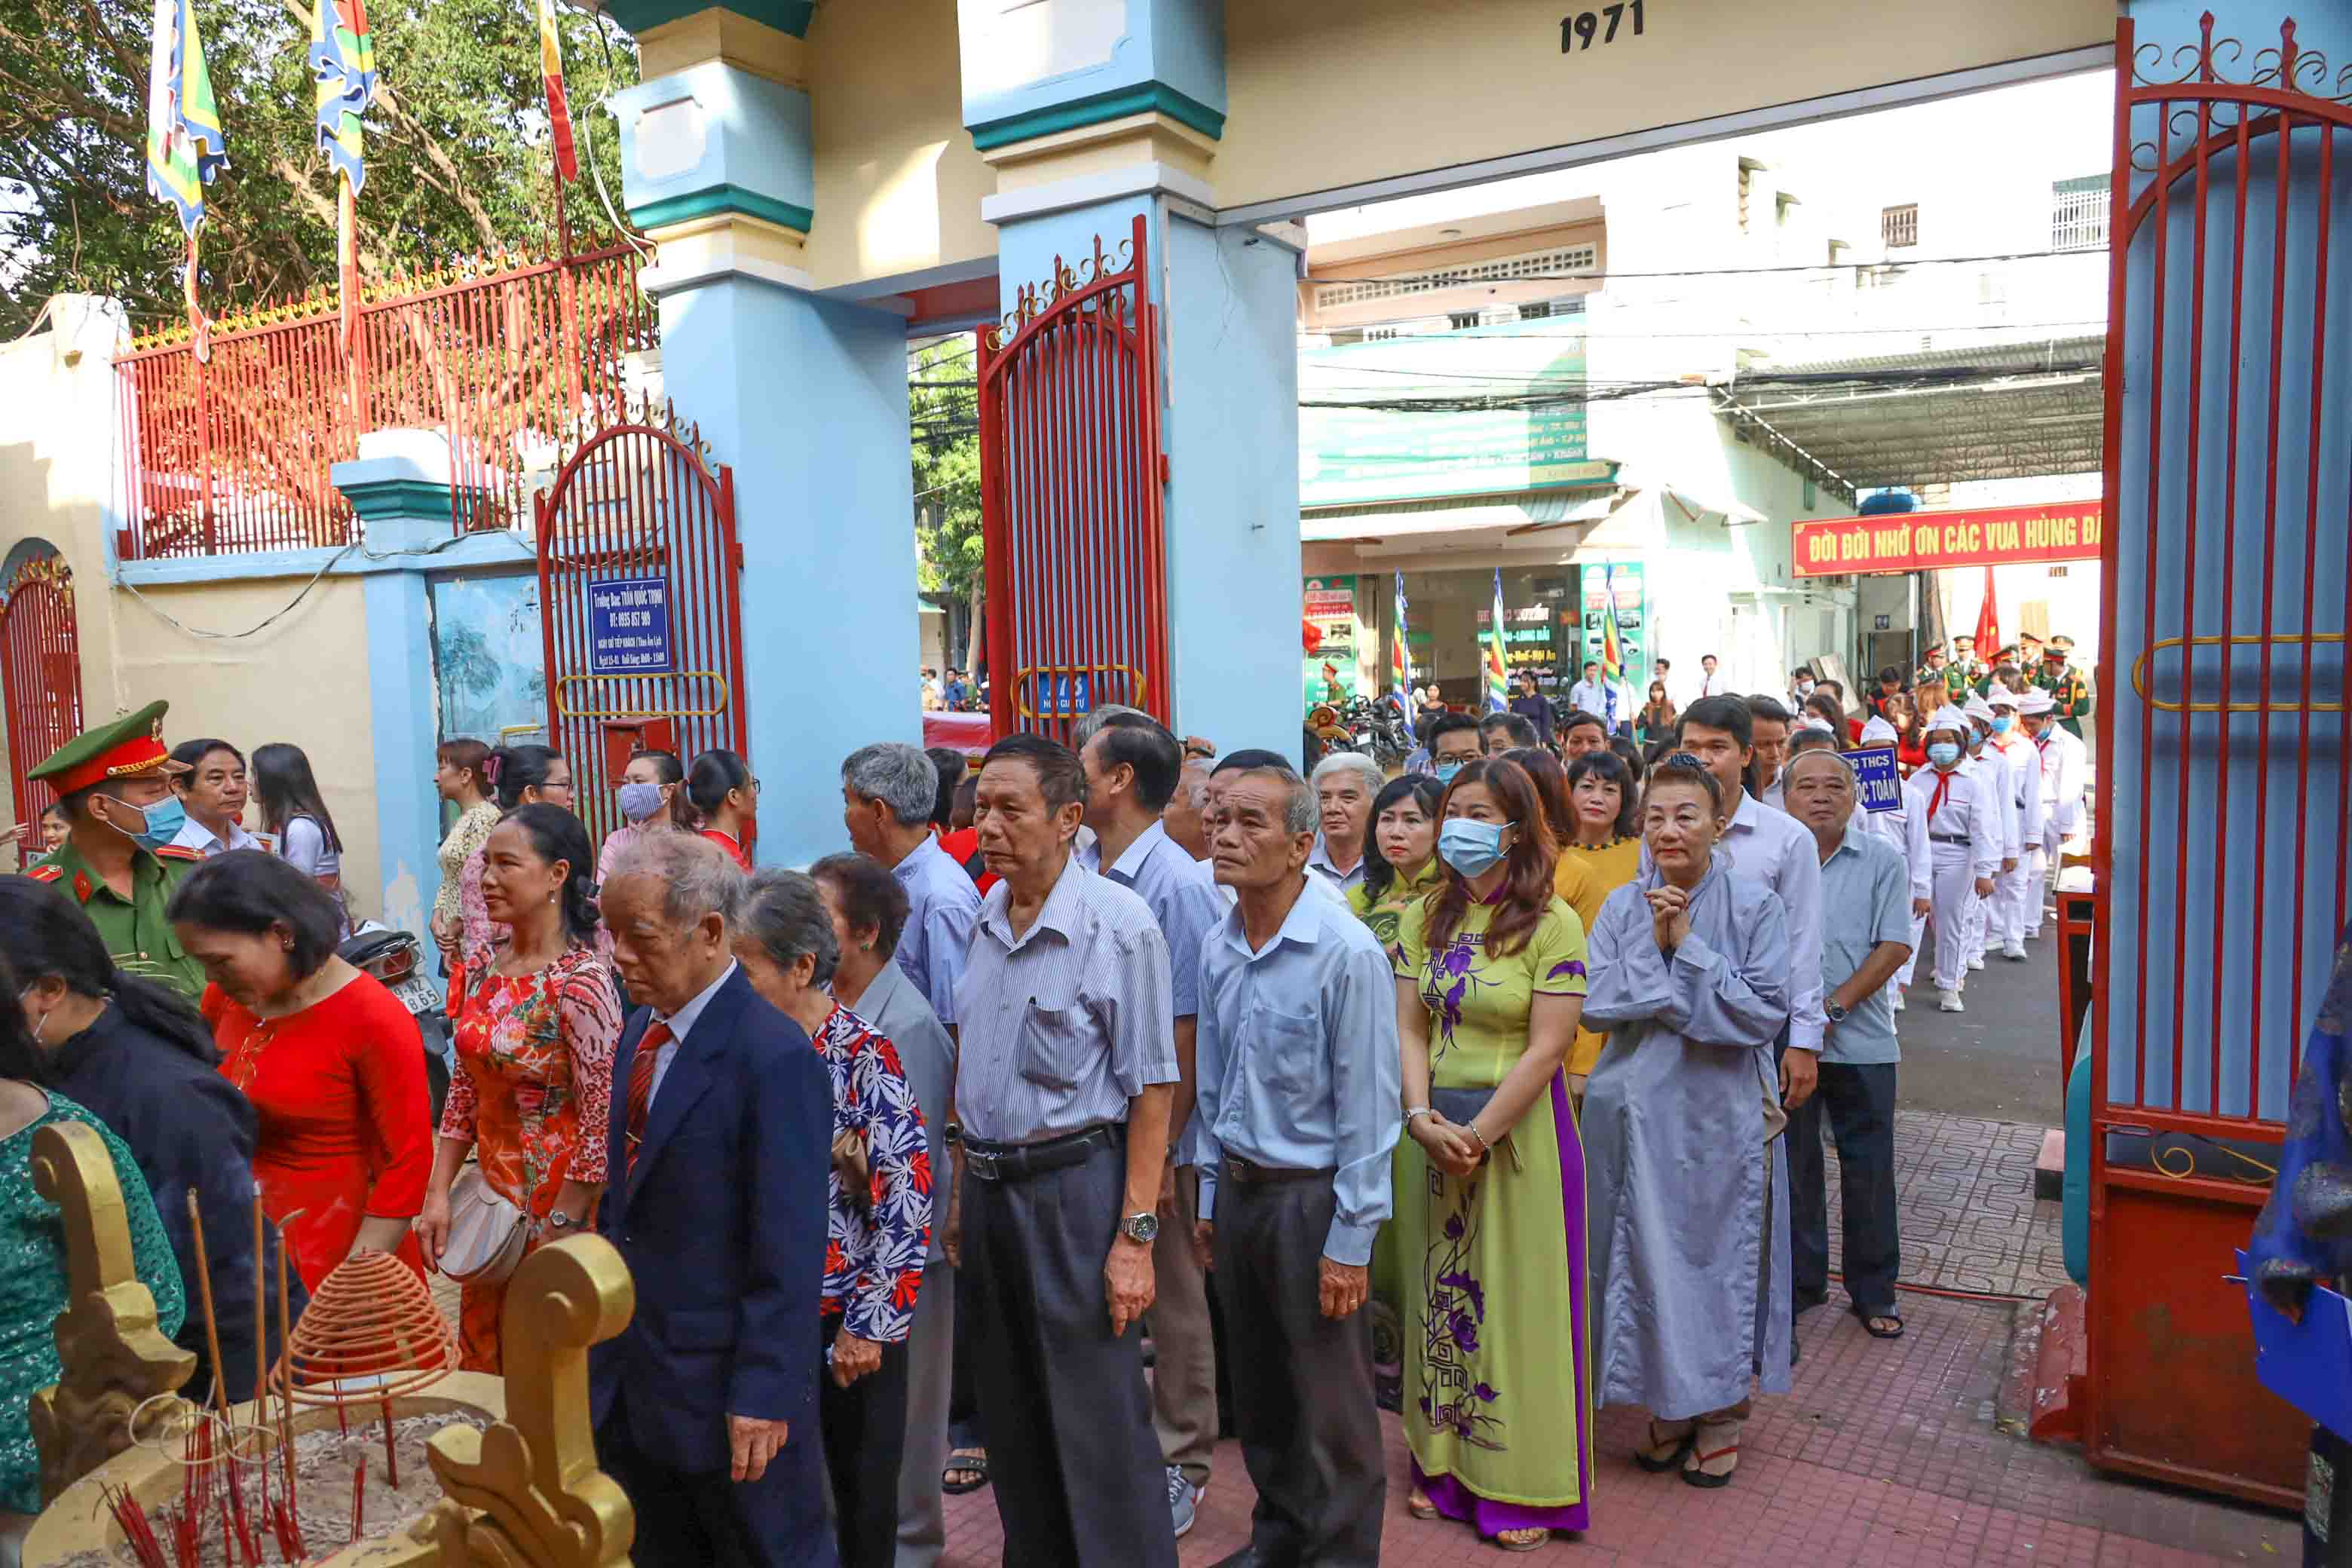 People waiting to pay tribute to Hung Kings